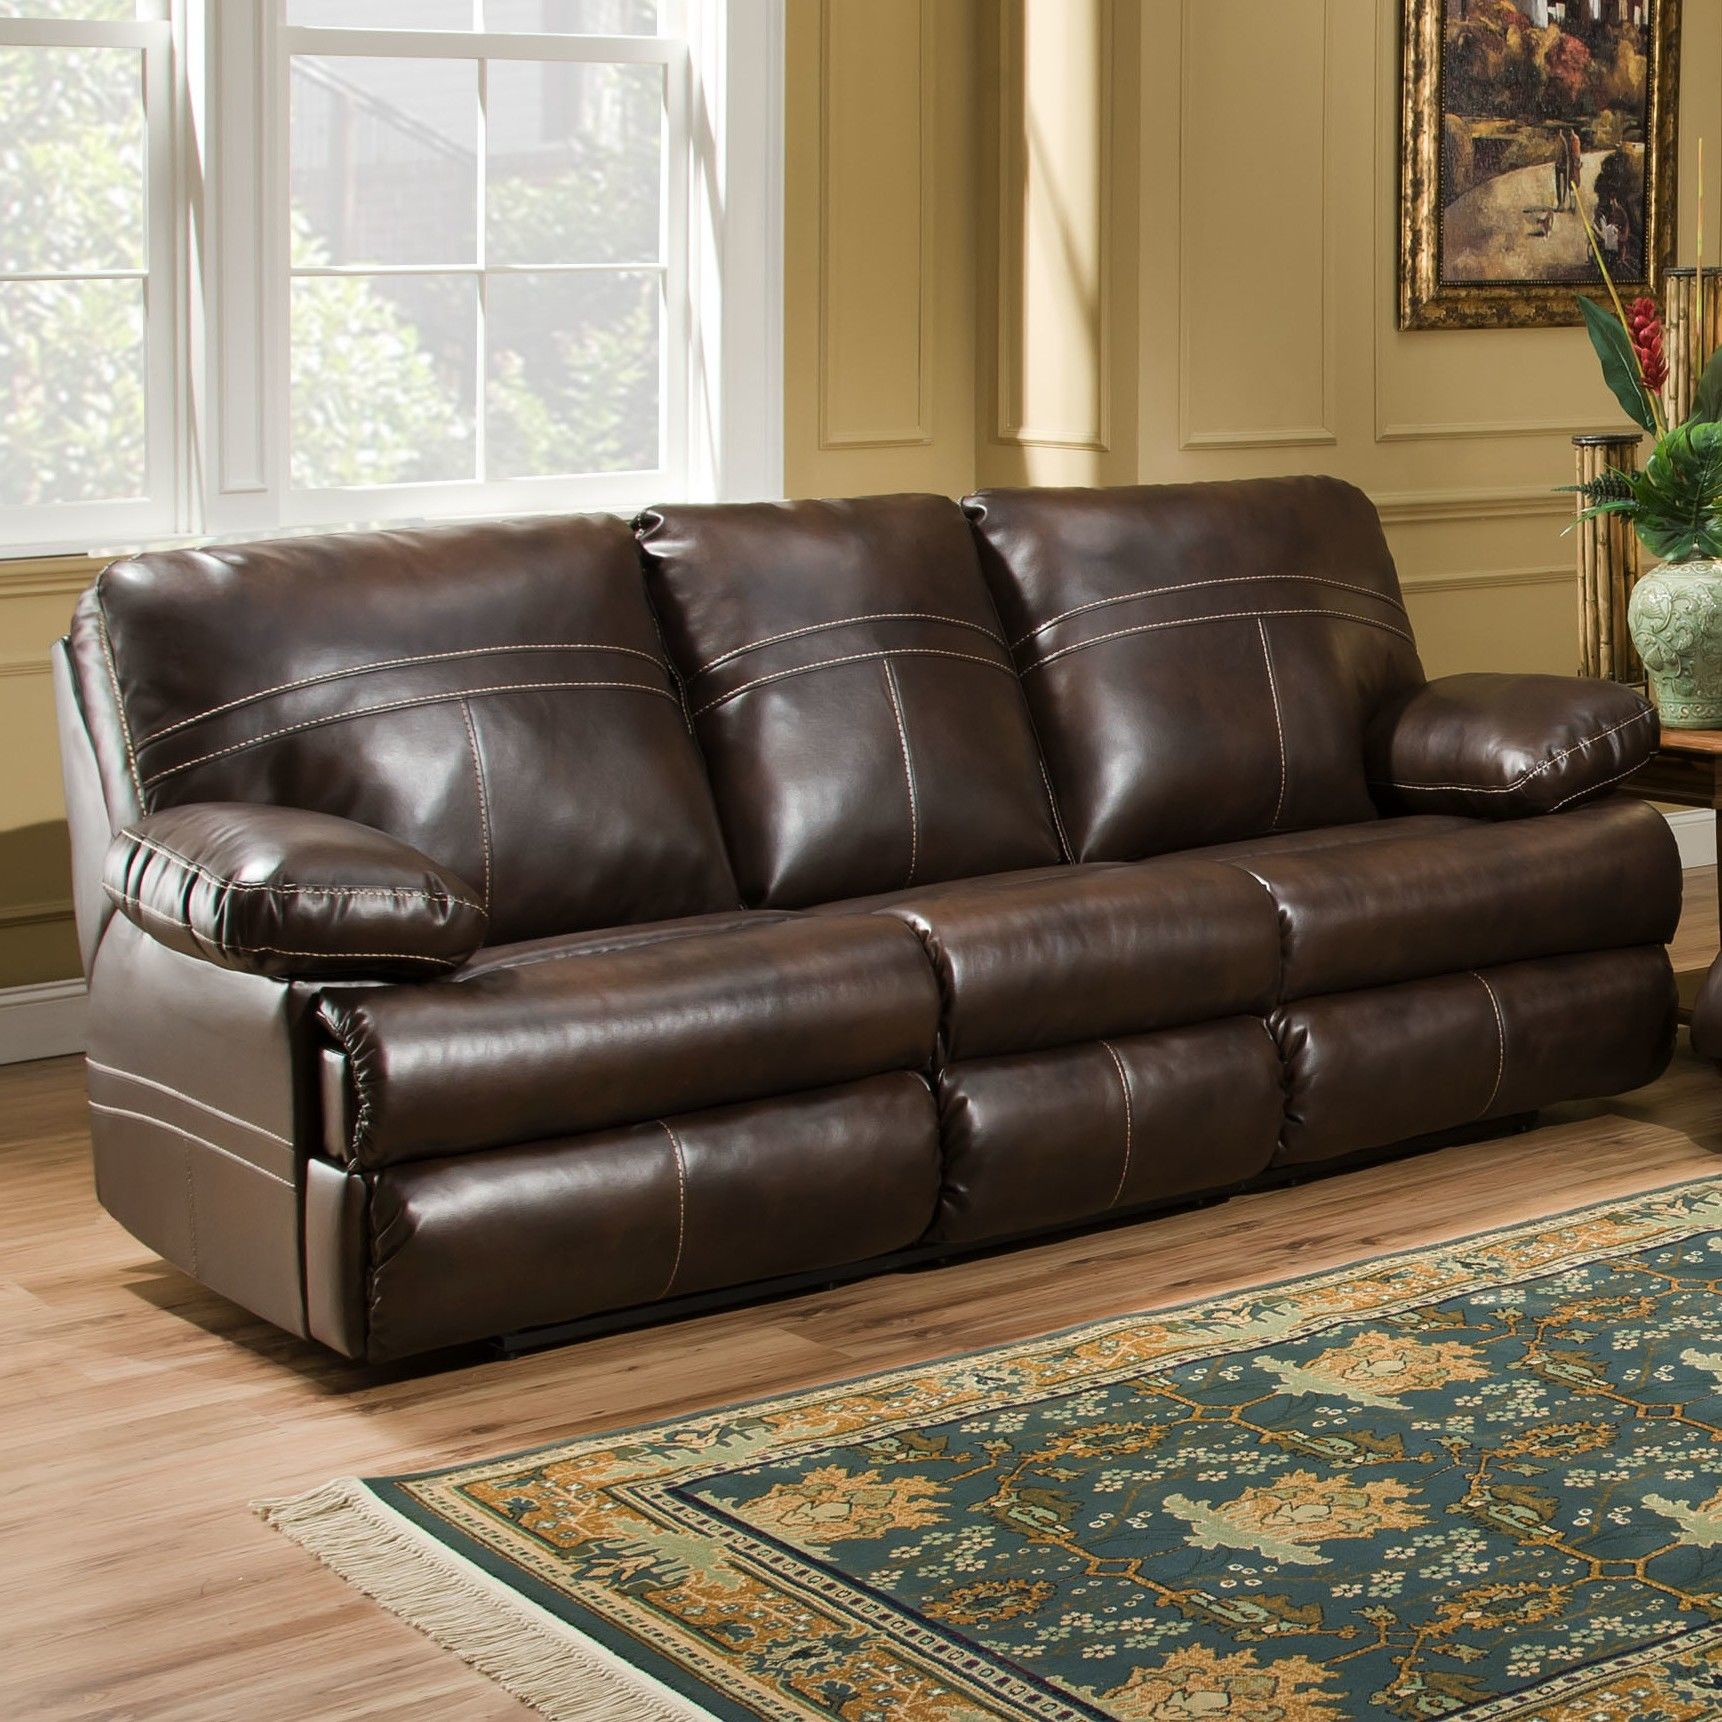 Beautiful Simmons Flannel Charcoal Sofa Concept Modern